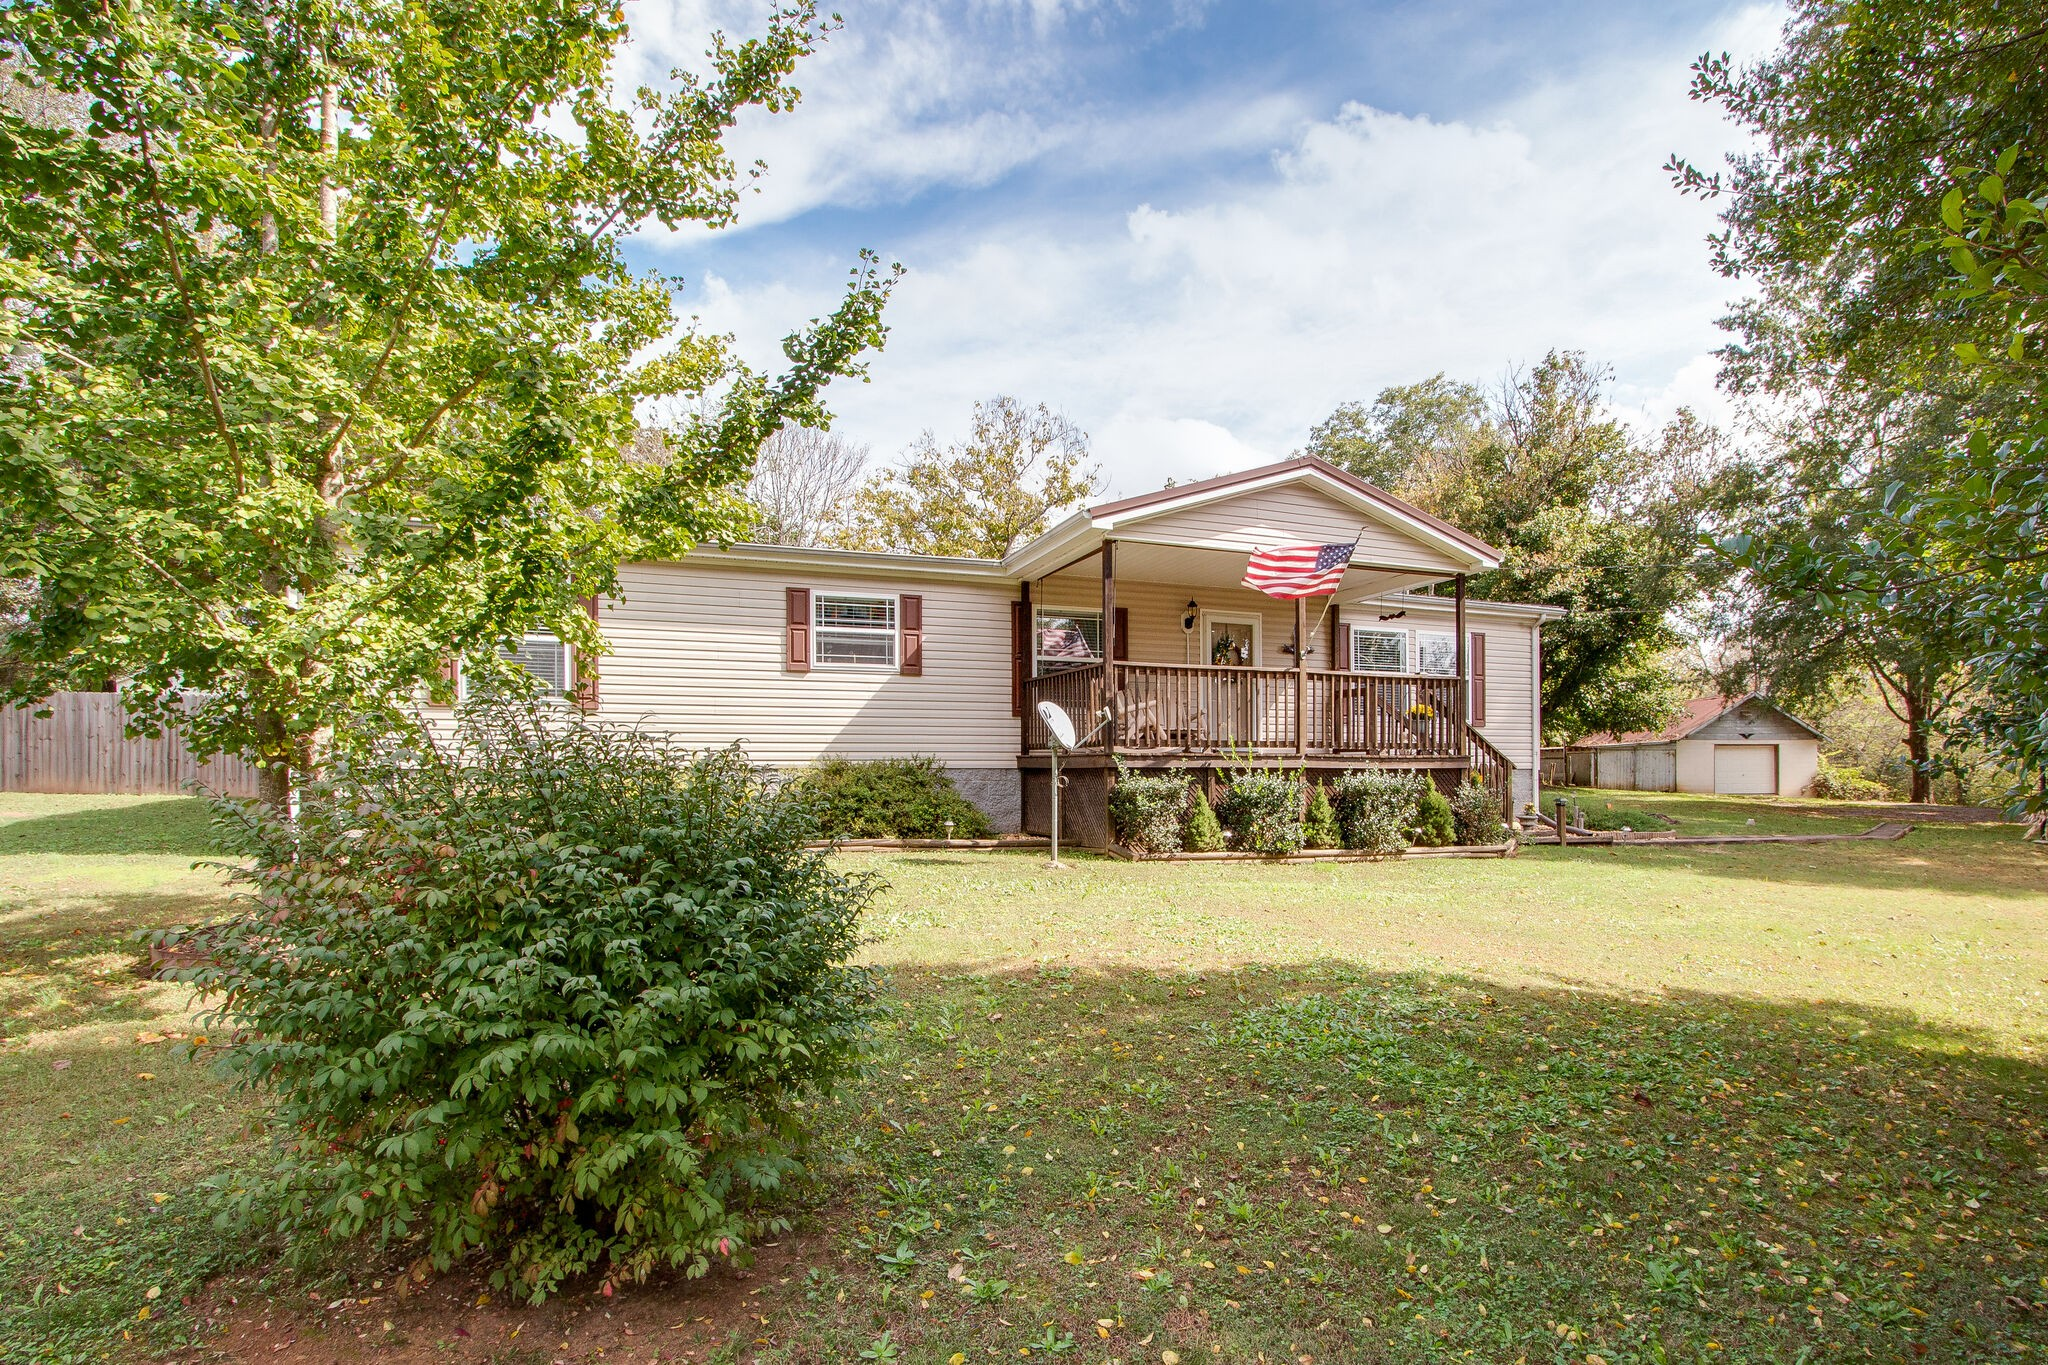 Great property on over an acre conveniently located near the 65S!  Property has been well maintained by its original owners.  Such a beautiful lot and includes a covered porch and patio, fenced in backyard and garden.  Home has neutral paint, stainless appliances, carpet and laminate floors. Included an oversized garage/shop with plenty of storage and room for toys.  Check it out!